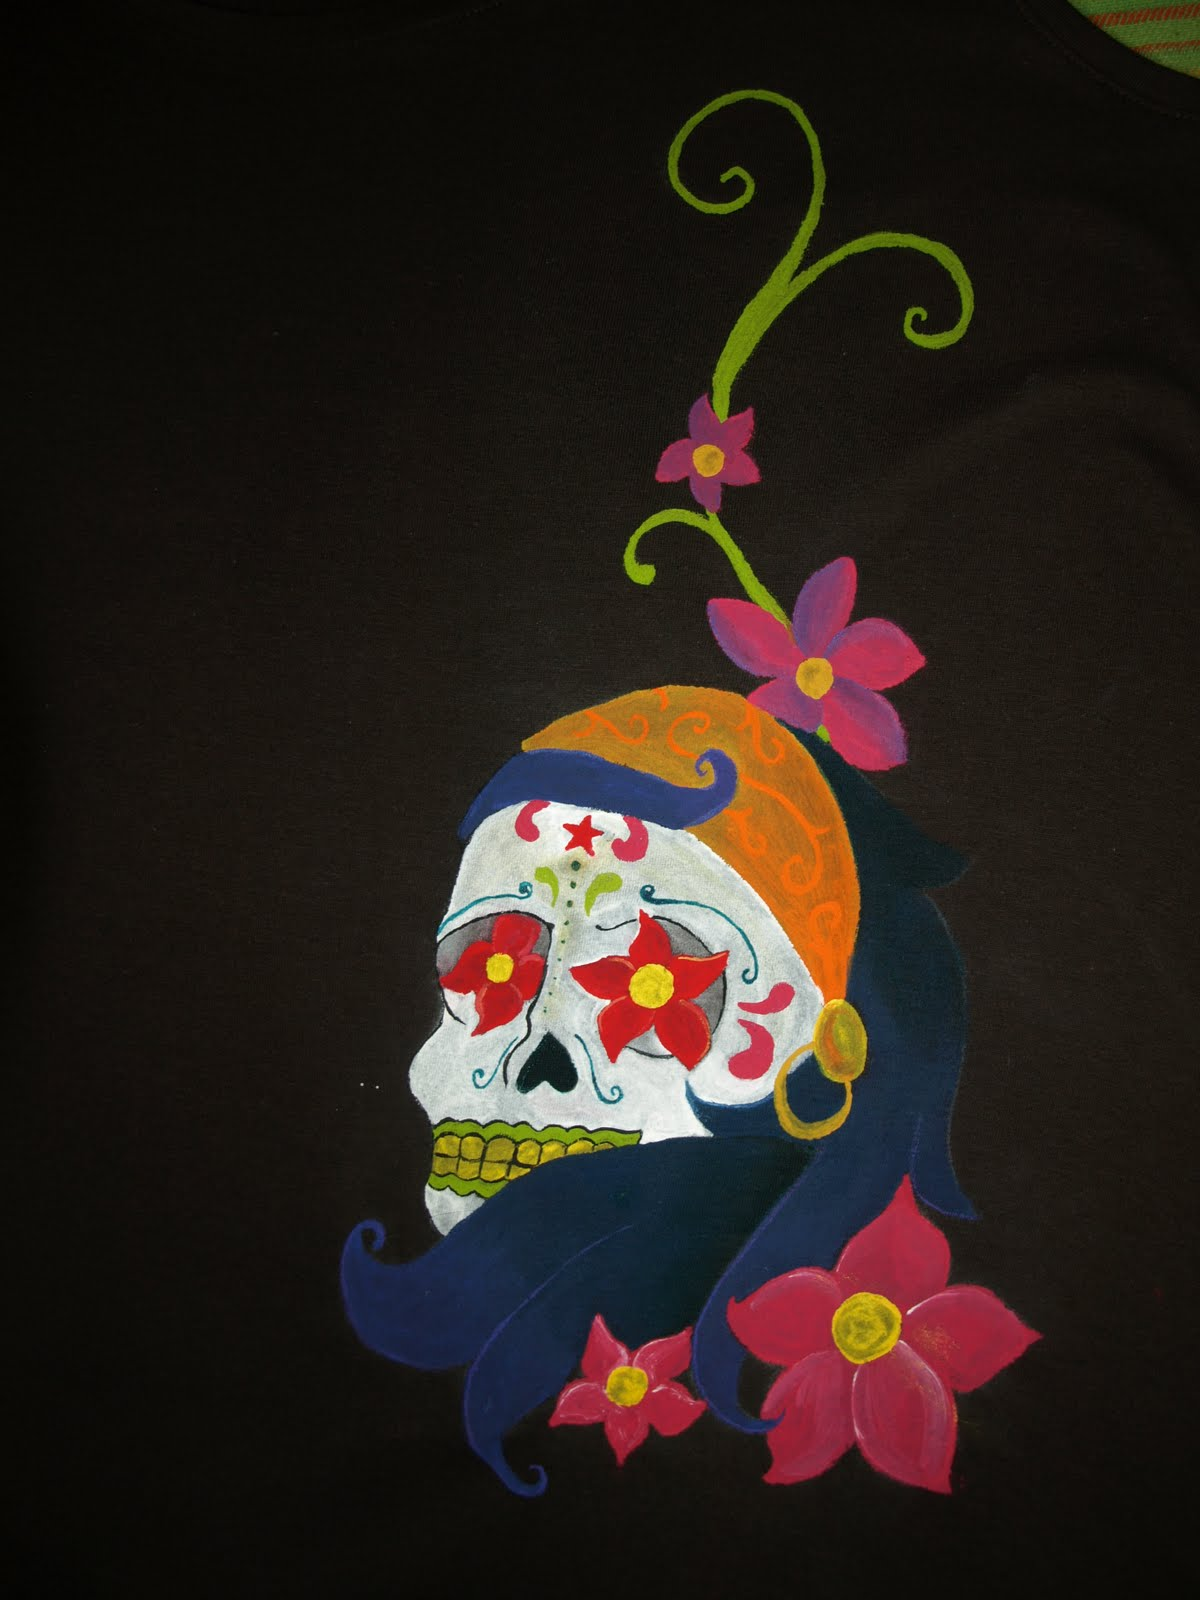 Pin Images Calaveras Mexicanas Calavera Mexicana Wallpaper ...